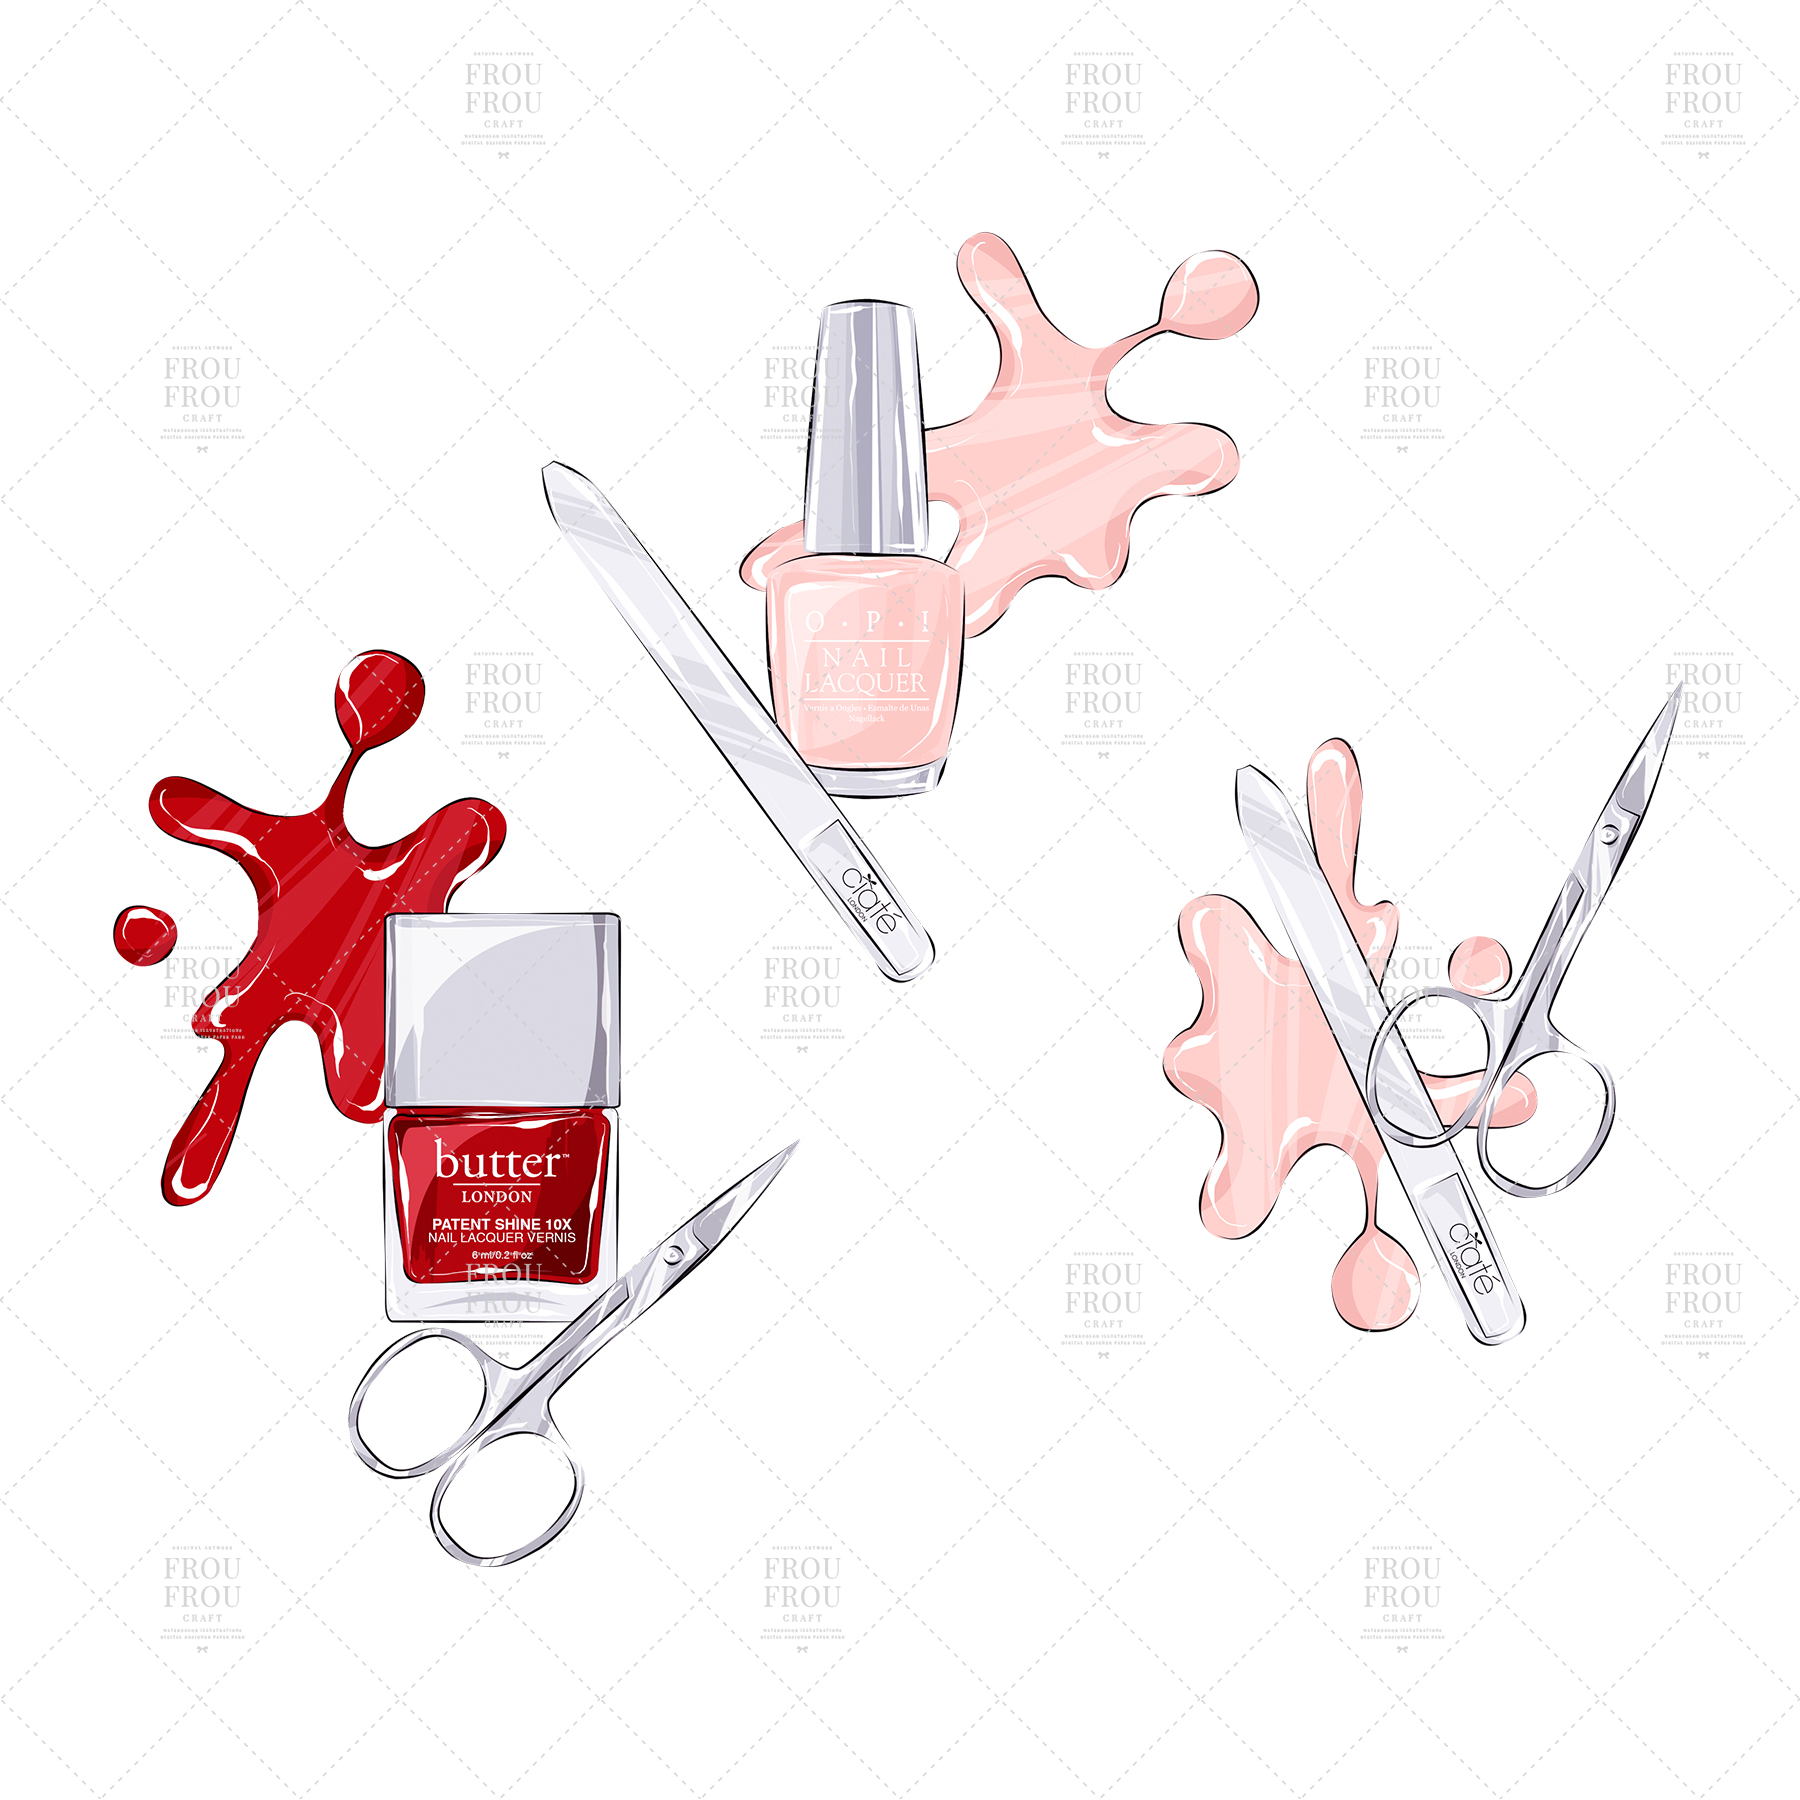 Manicure Cosmetic Nail Polish Beauty Clip Art example image 9